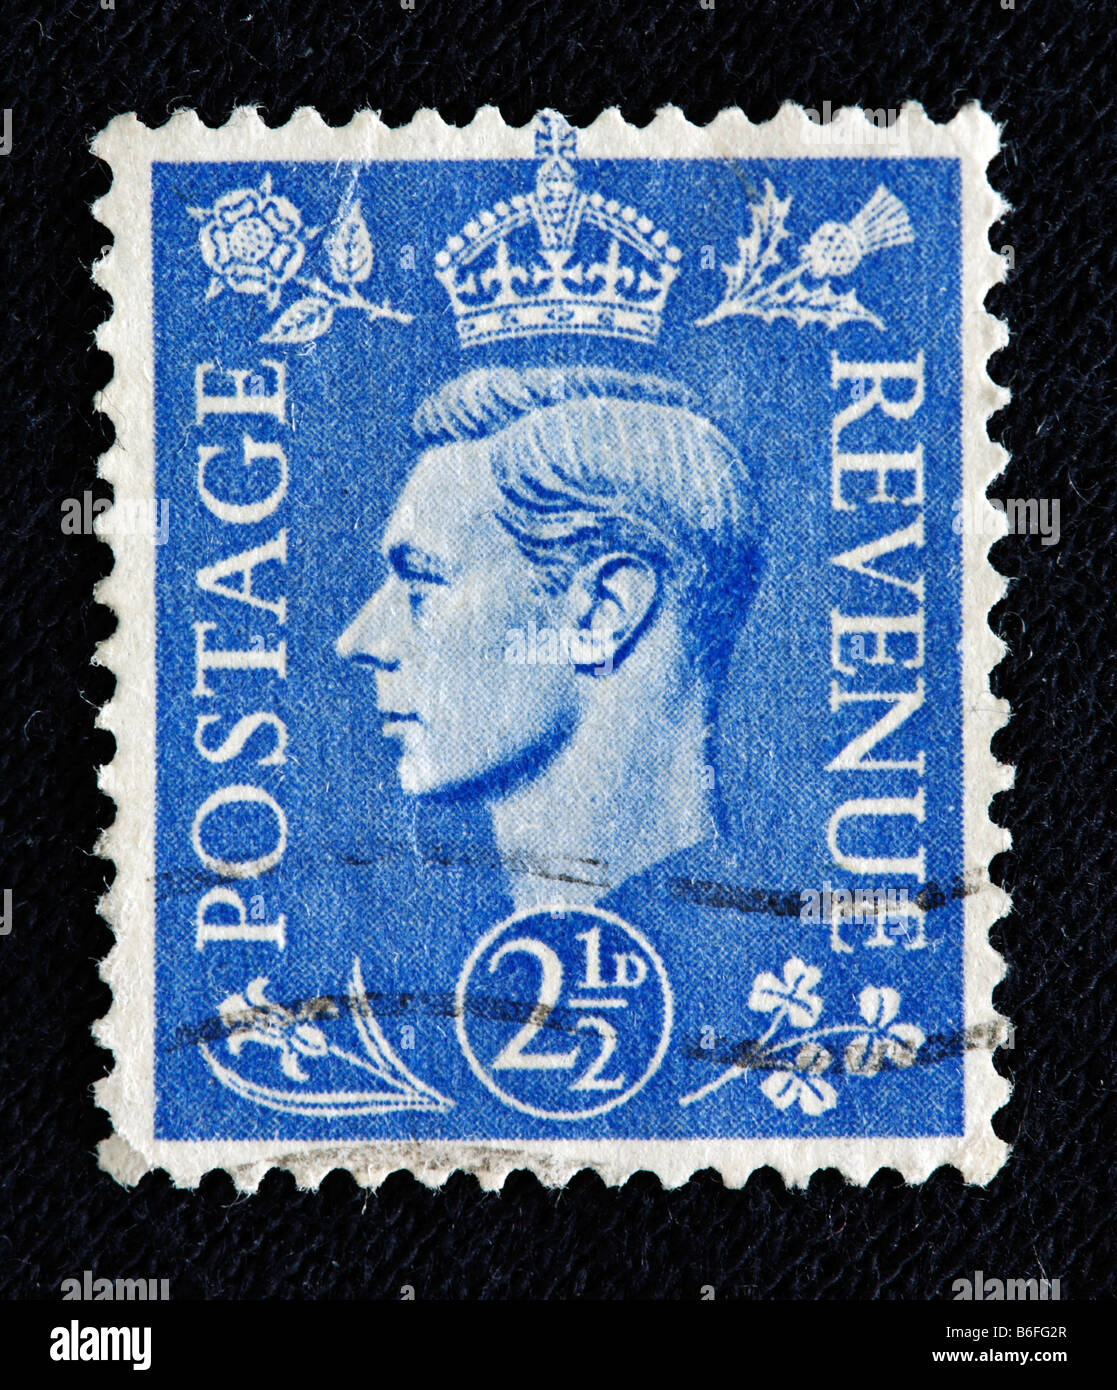 King George VI Of The UK 1936 1952 Postage Stamp